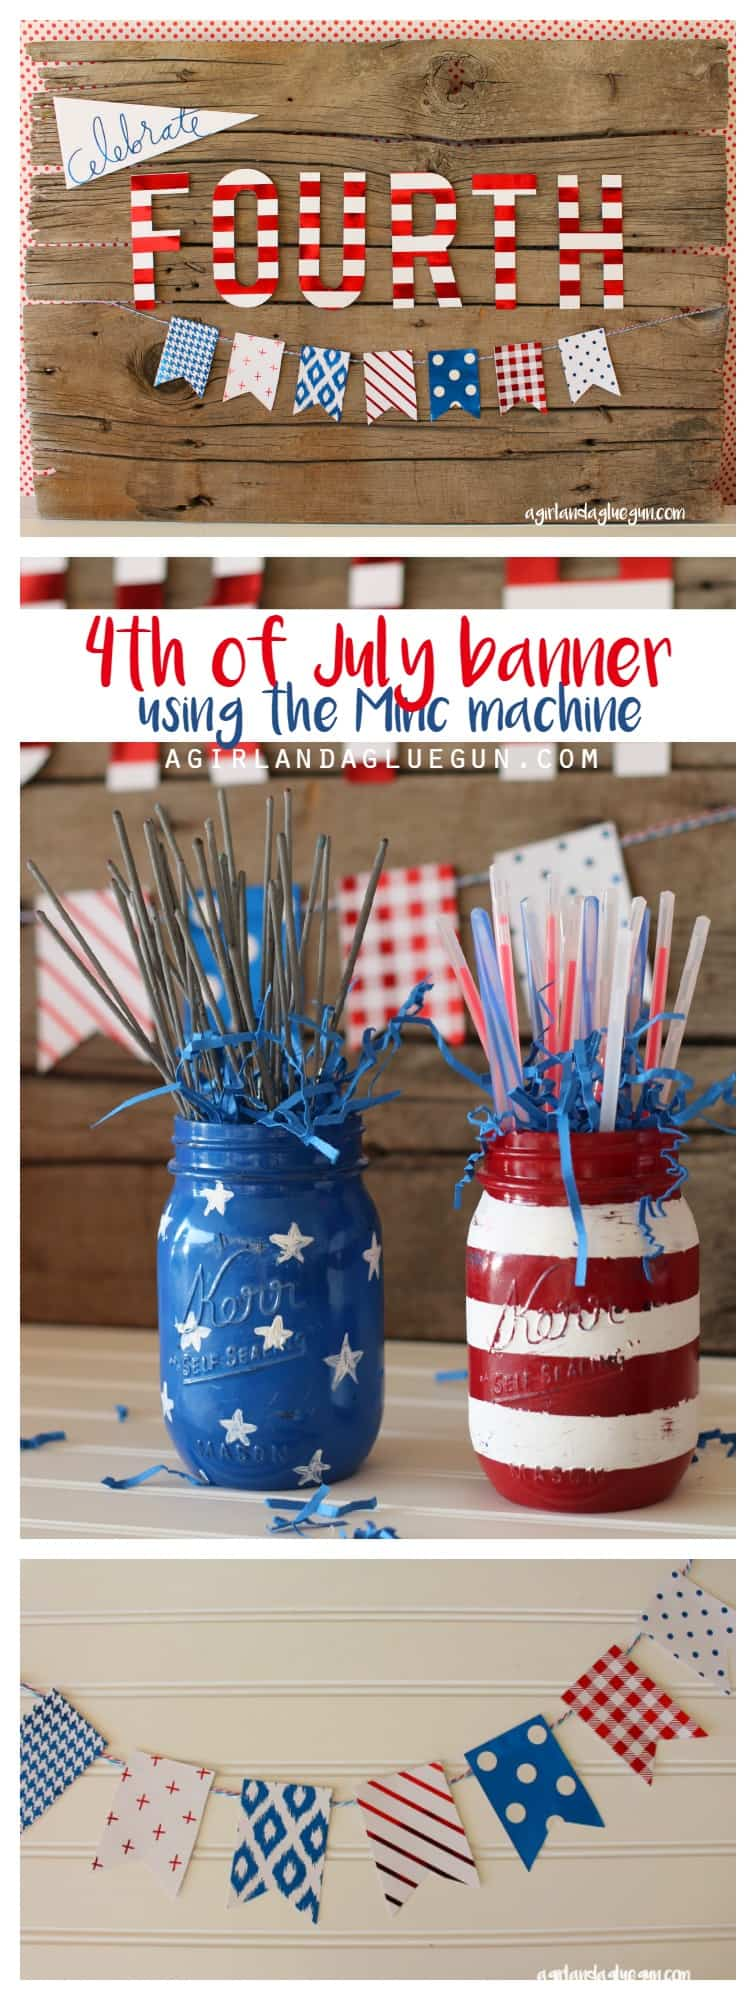 patriotic 4th of July banner and sign using Minc machine from Heidi swapp a girl and a glue gun